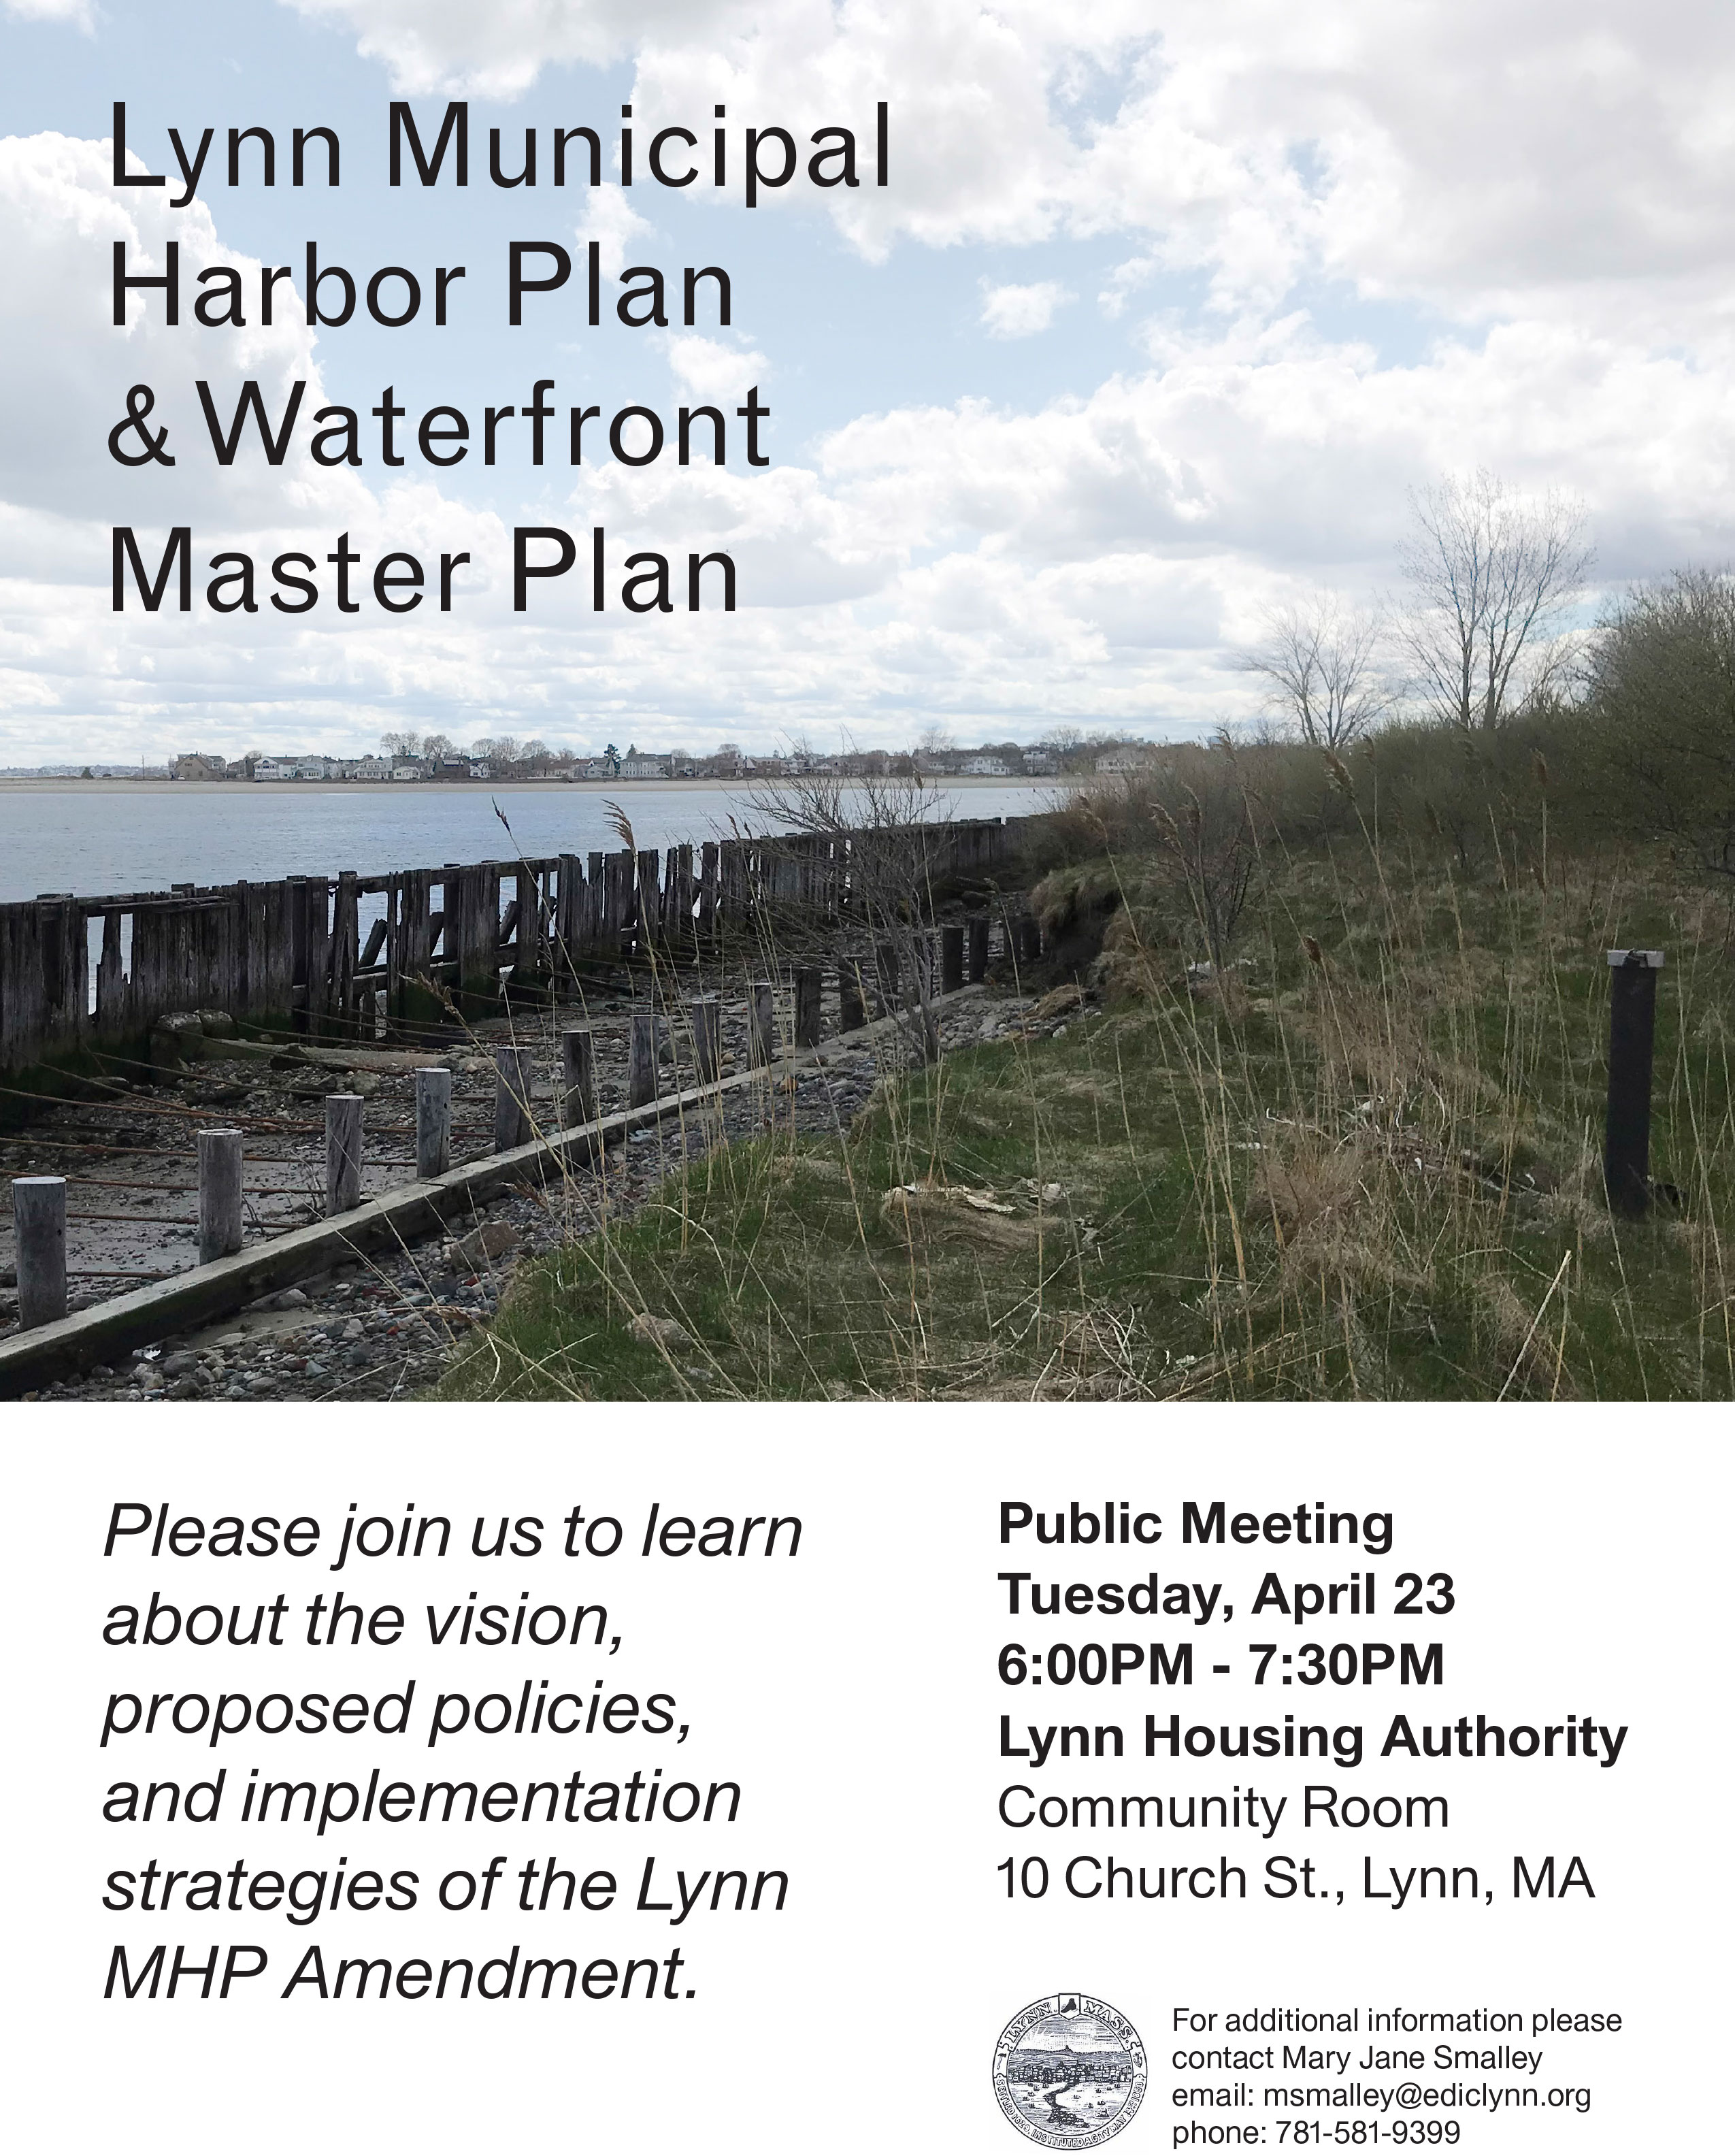 waterfront_master_plan_meeting_apr_23_2019.jpg